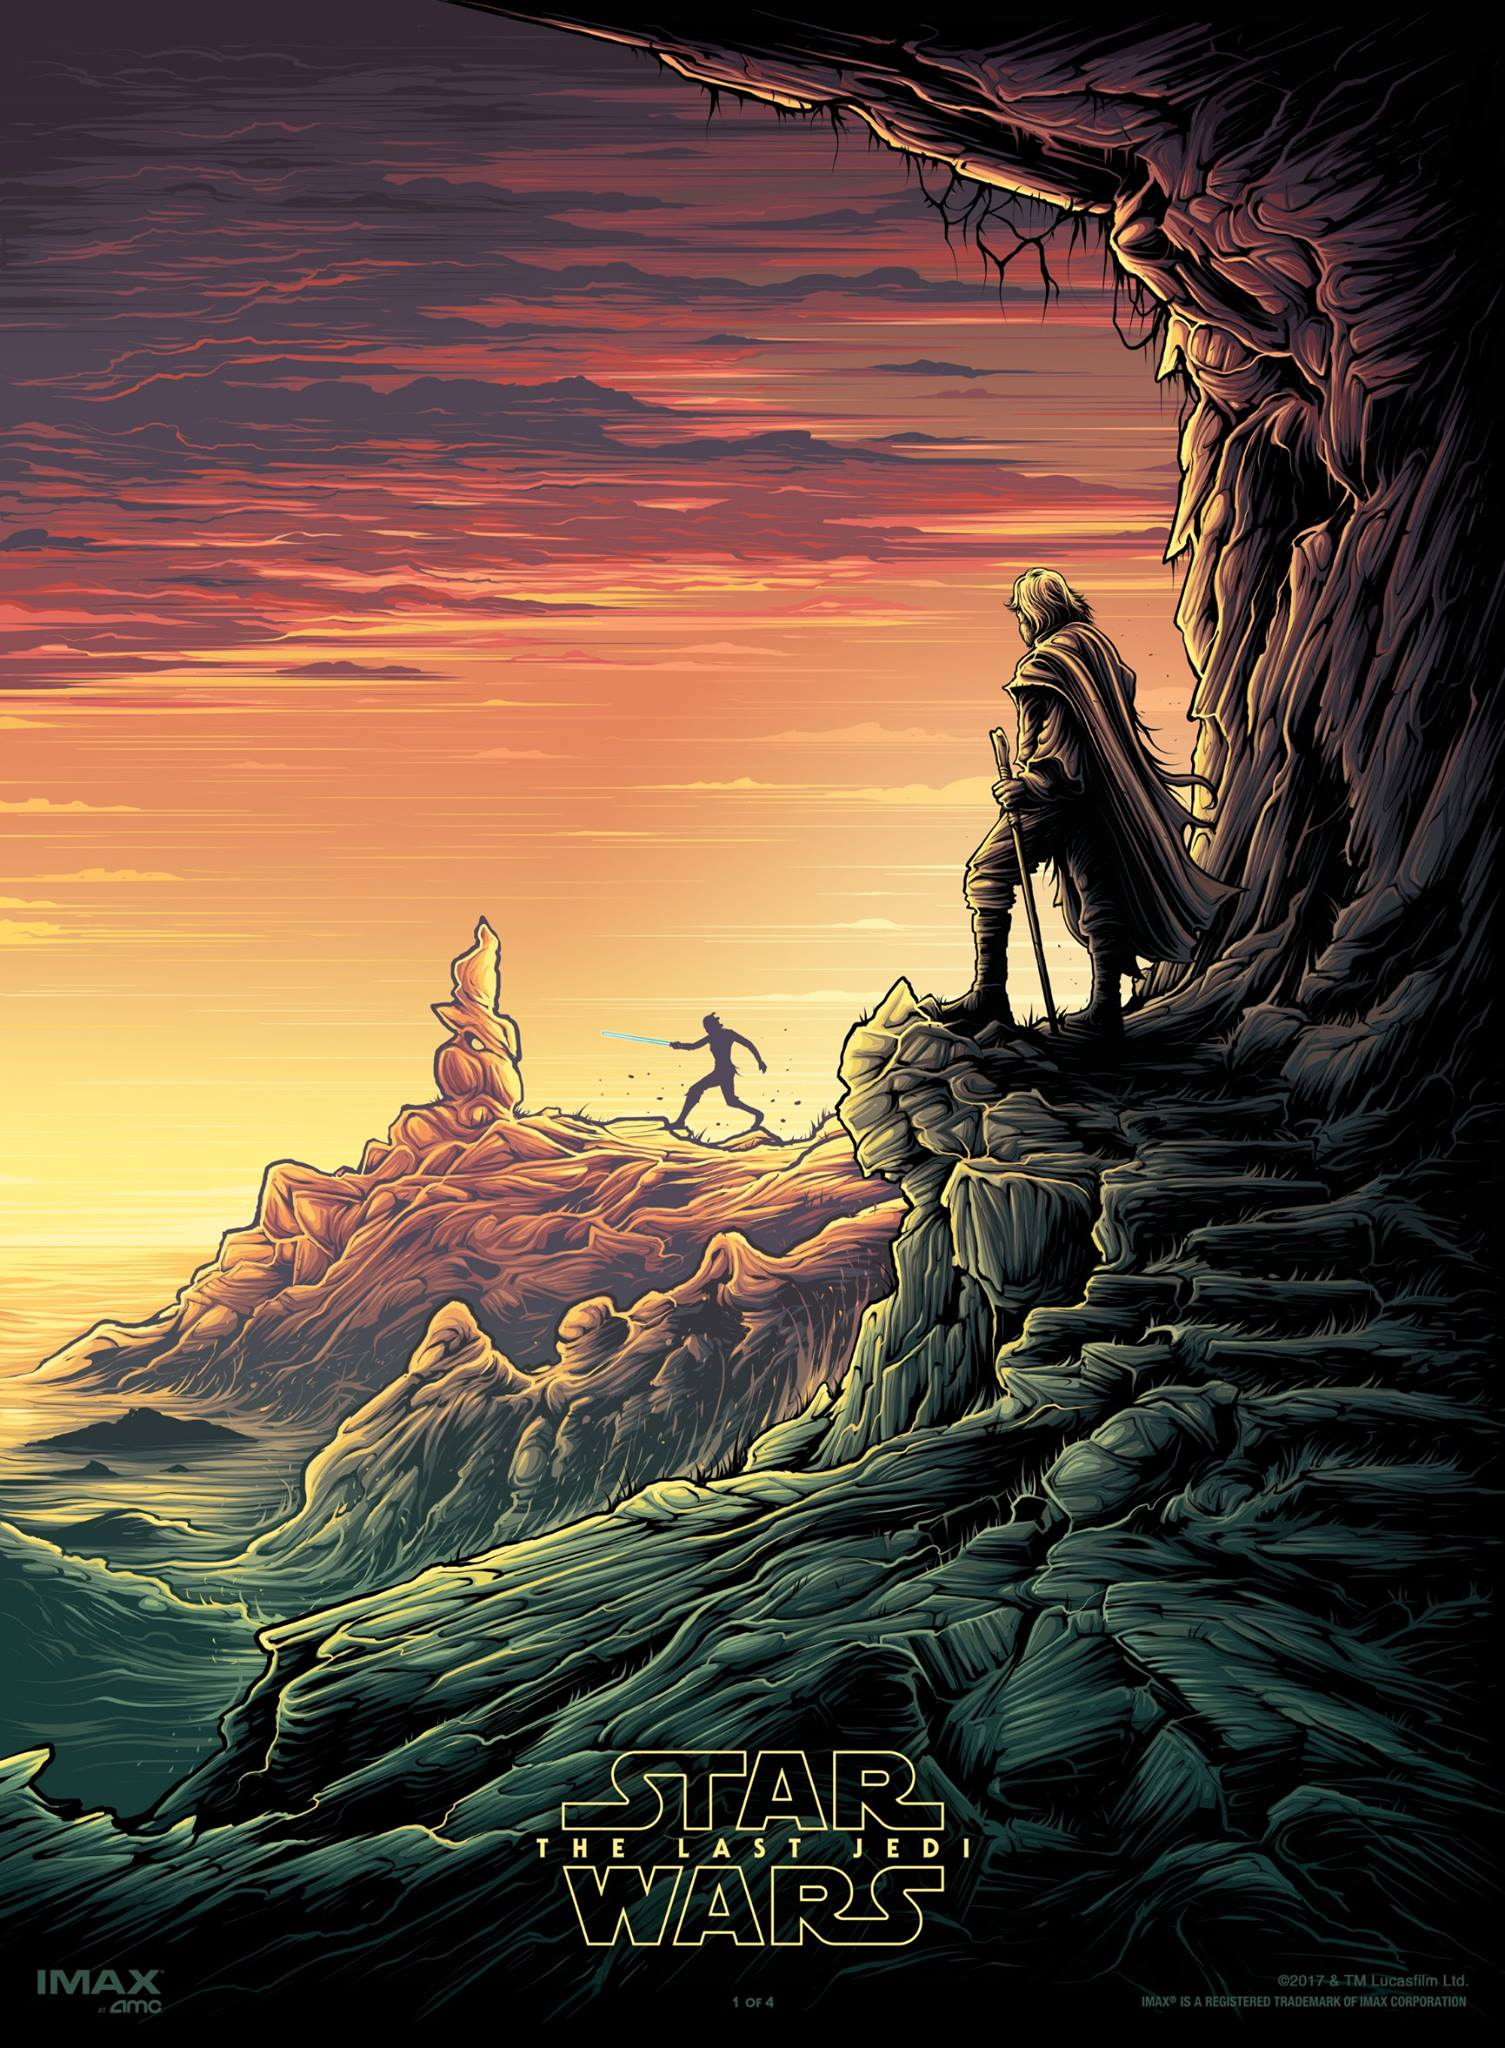 Star Wars: The Last Jedi AMC IMAX poster #1